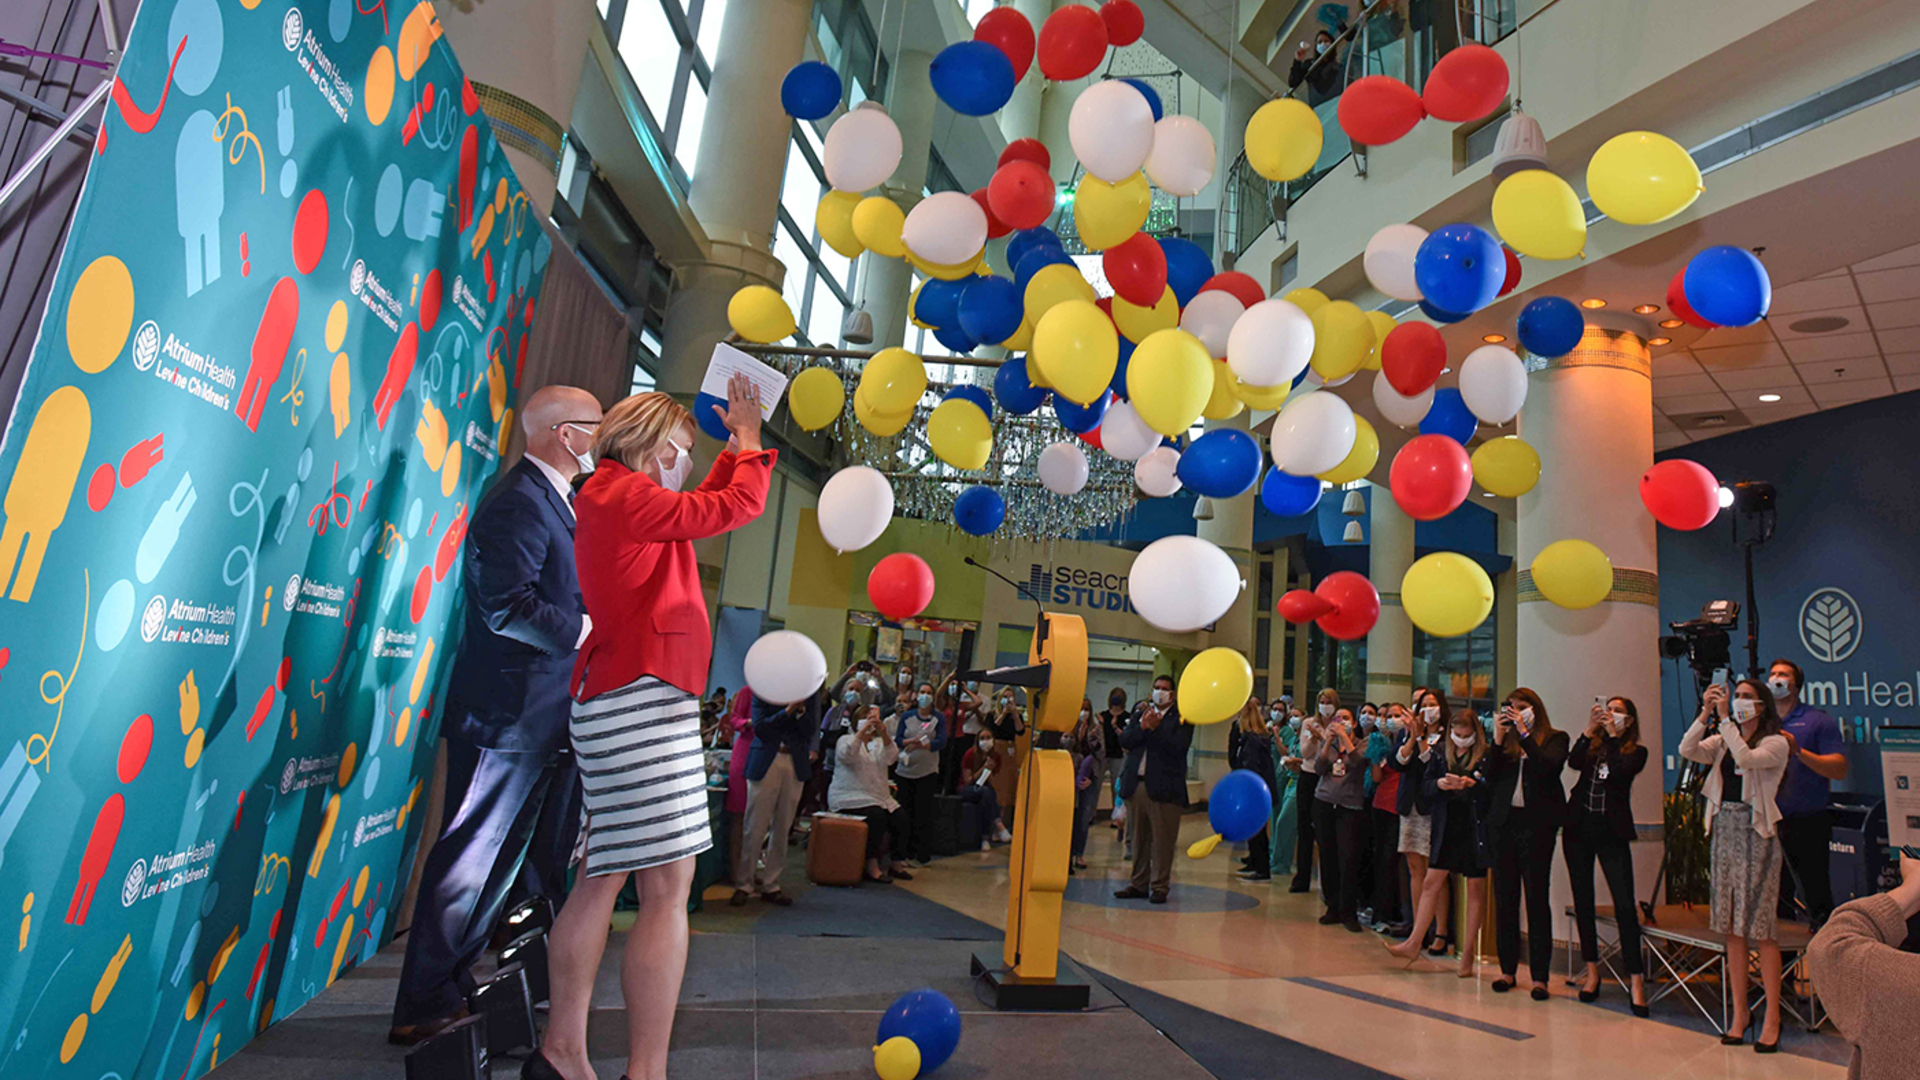 At Atrium Health Levine Children's, we're not just inspired by kids' dreams. We're committed to making them come true. That's why we're the only children's hospital in the region to be named a Best Children's Hospital by U.S. News & World Report for 13 years in a row. And this year, we're ranked in more specialties than ever.